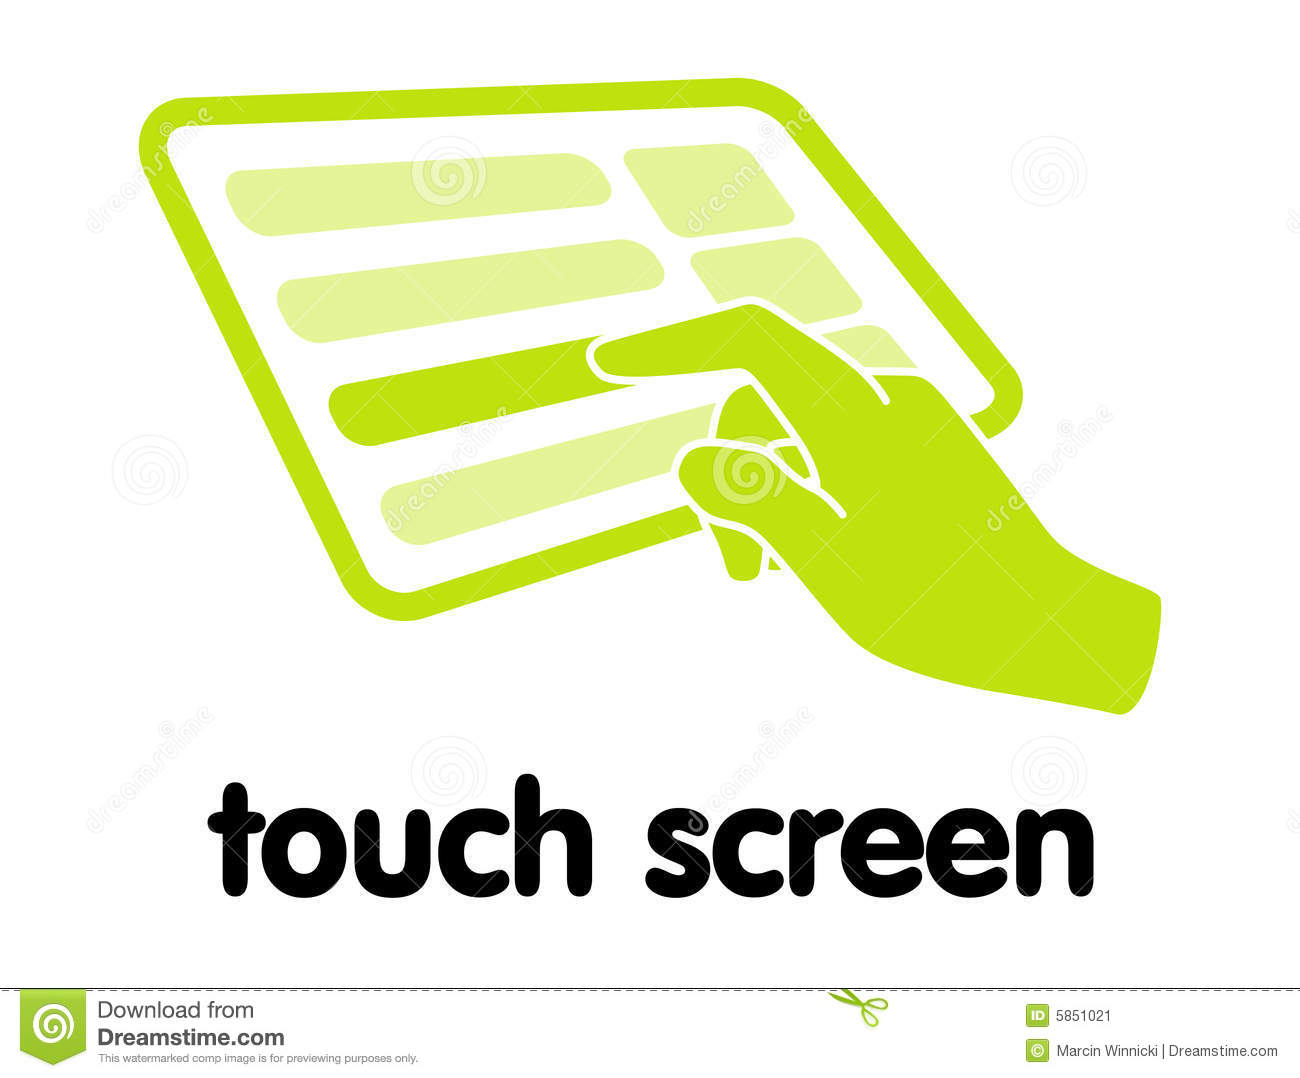 Clipart touch screen.